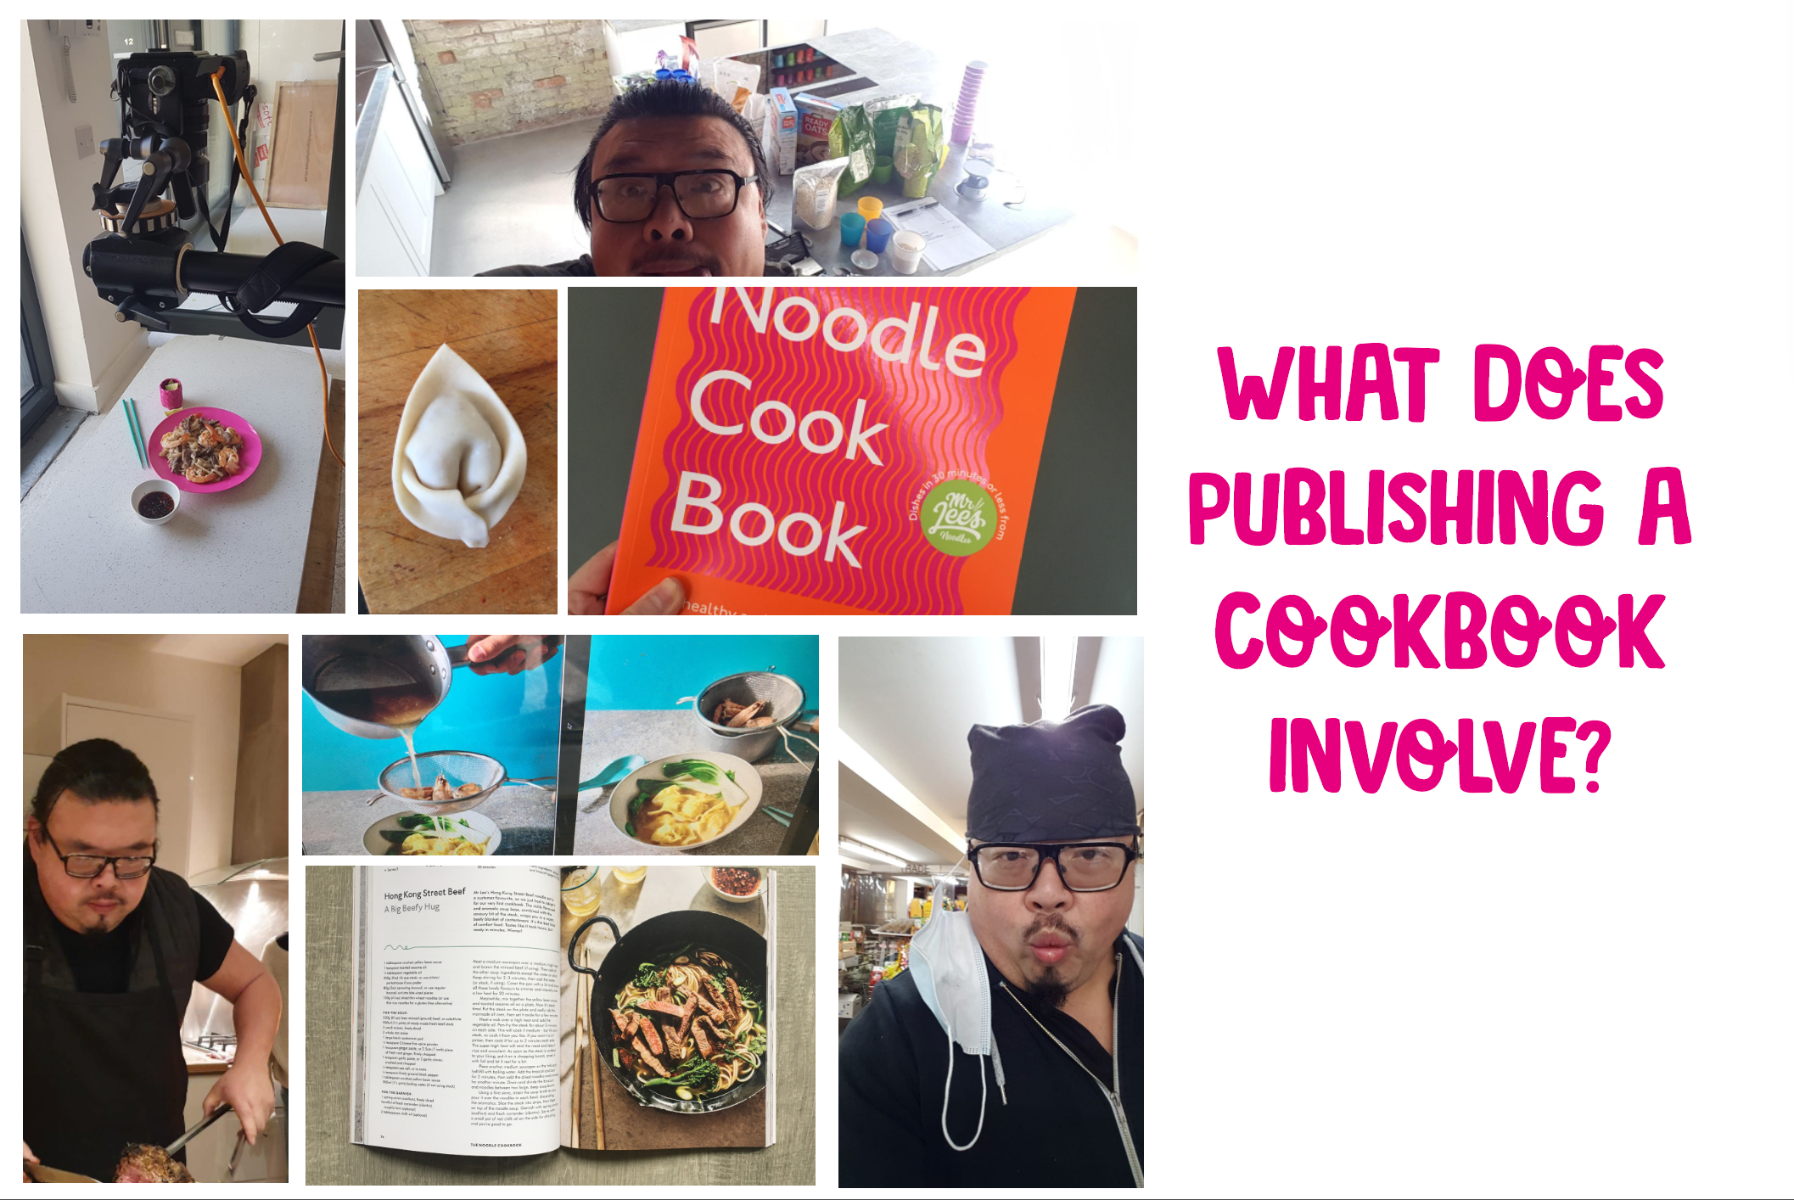 Behind the scenes of publishing a cookbook